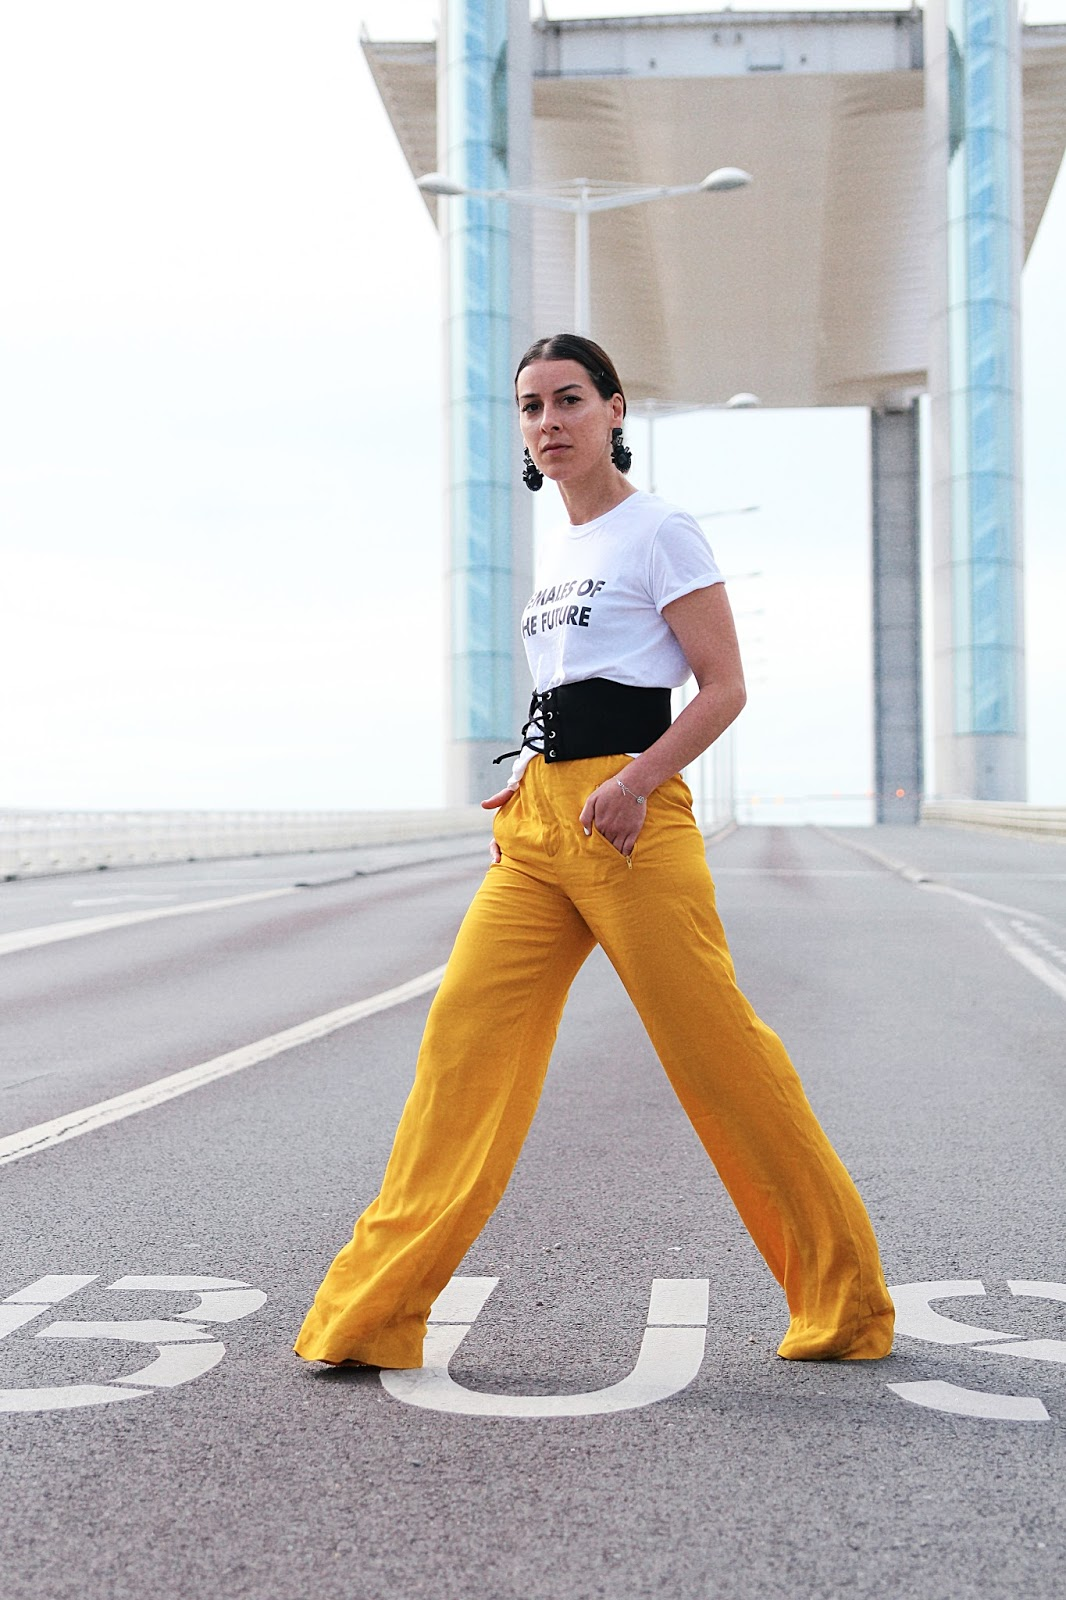 idée-de-look-été-2017-pantalon-jaune-t-shirt-females-of-the-future